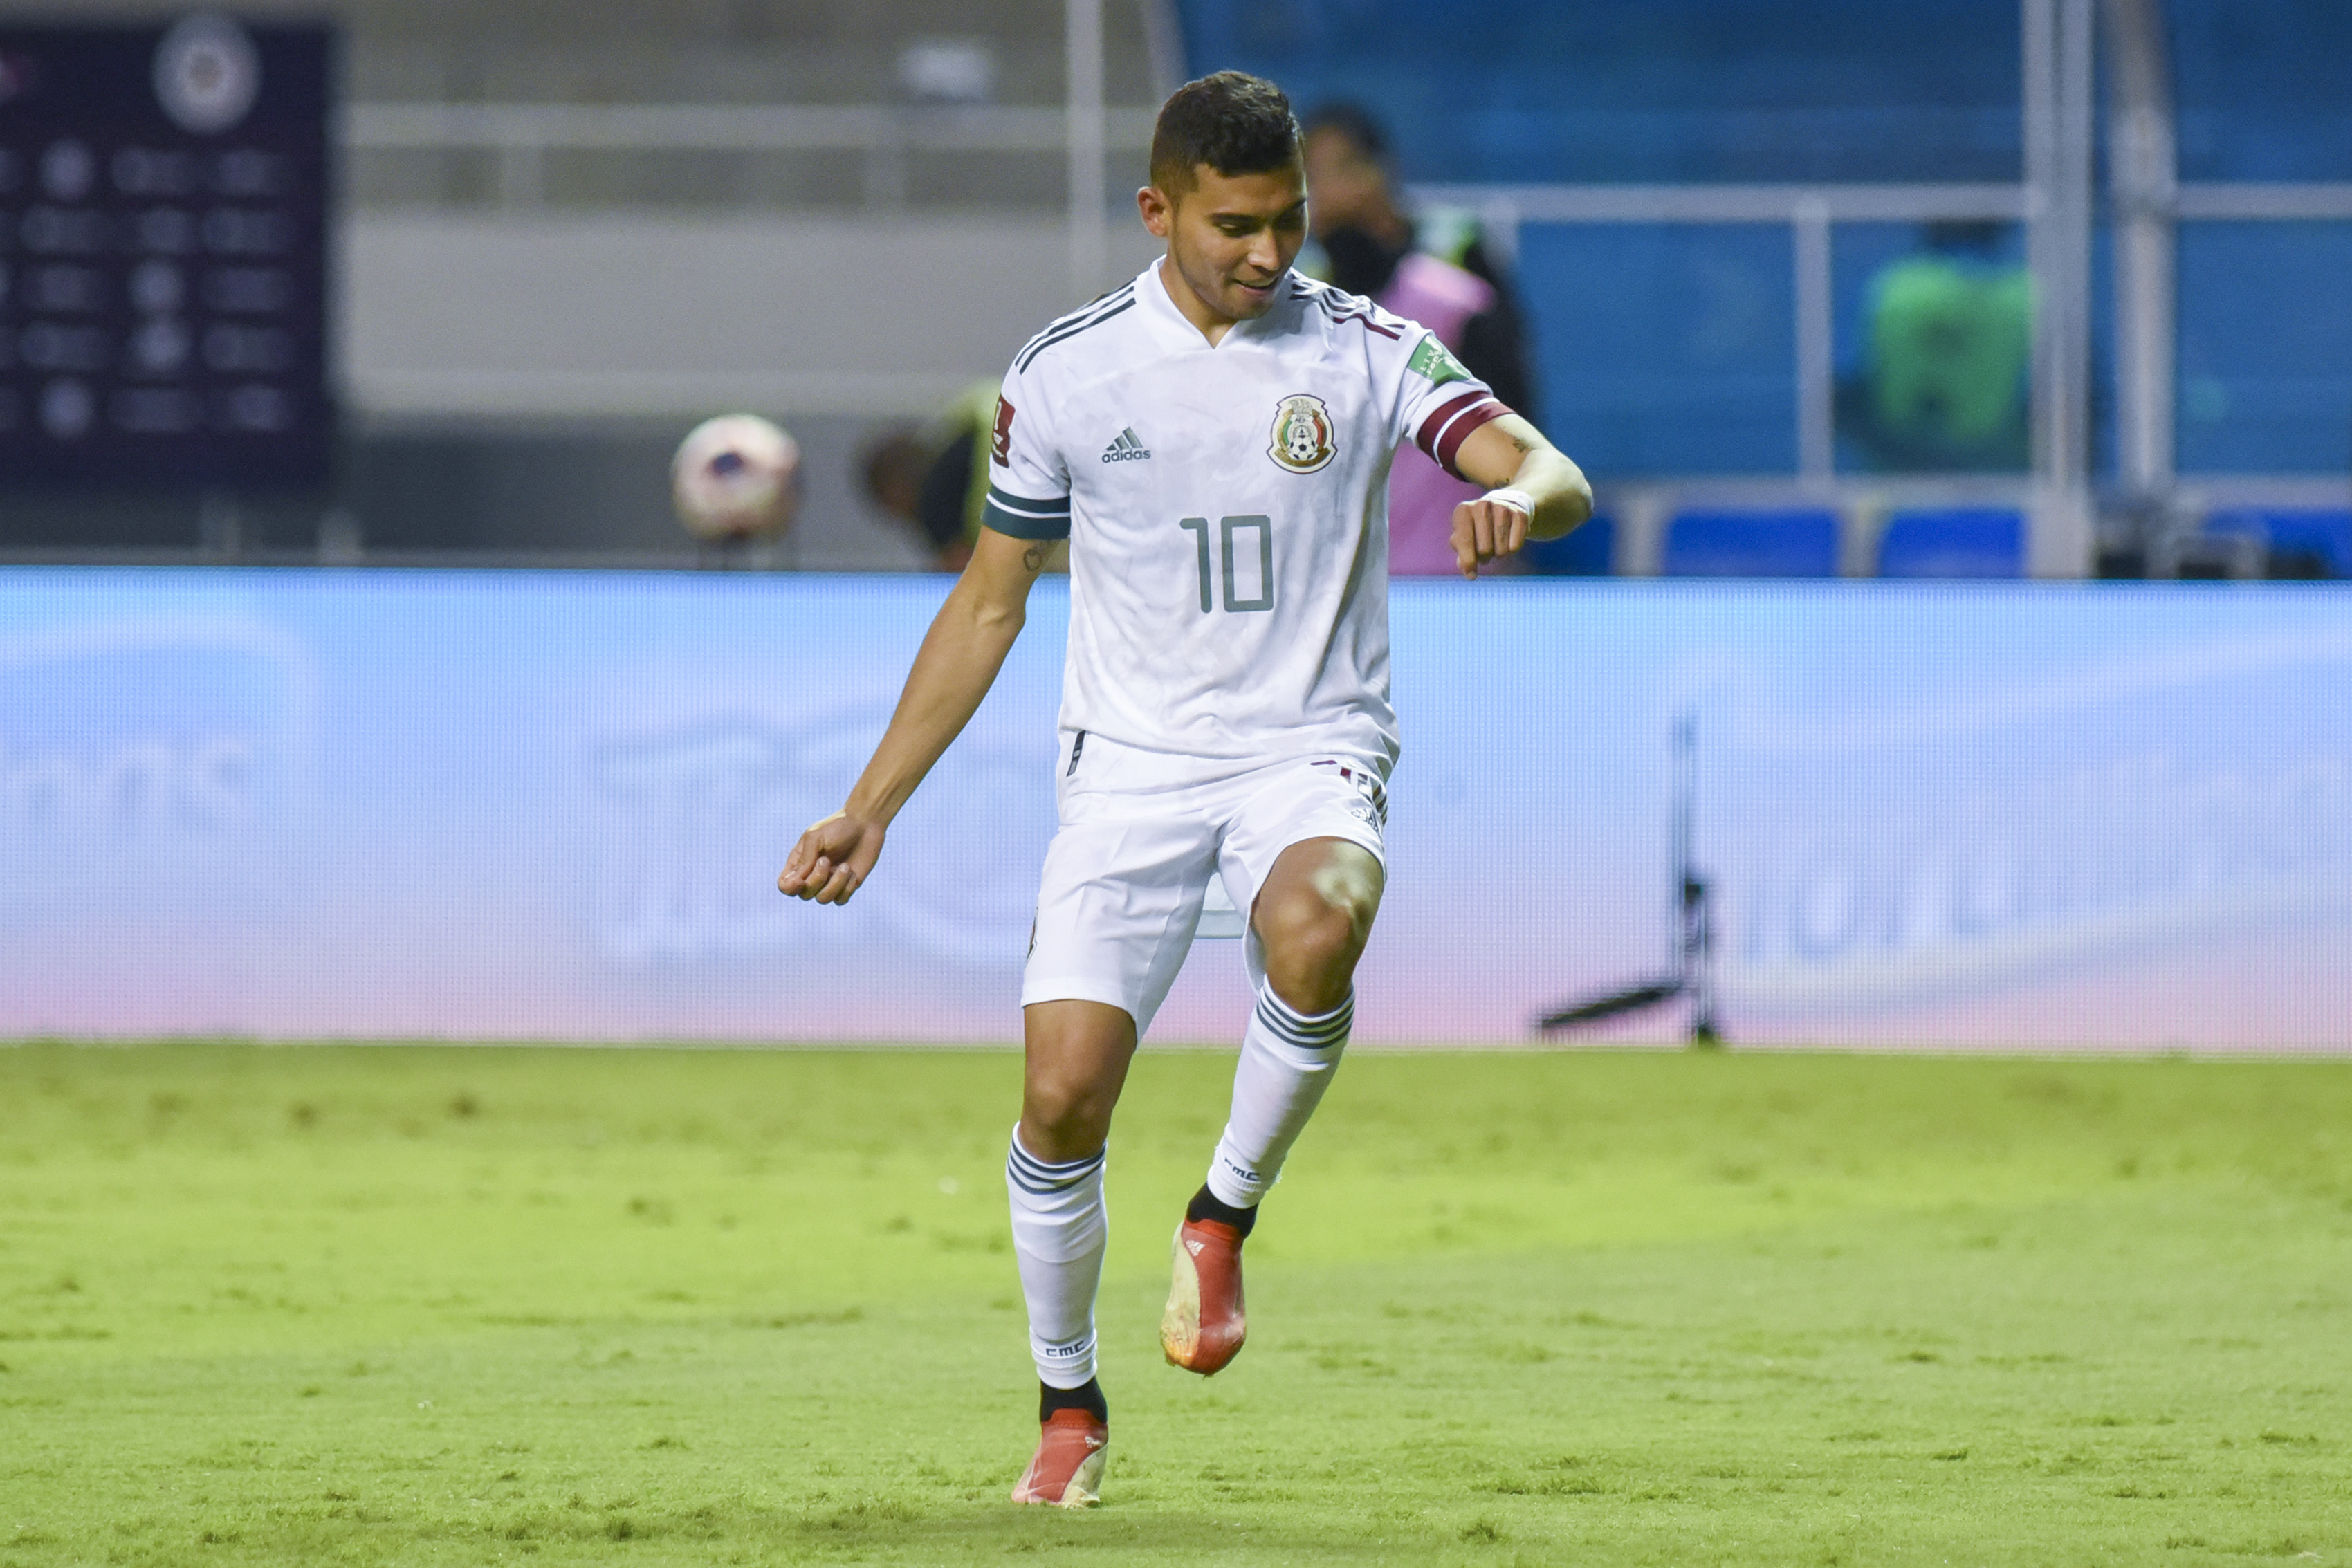 Costa Rica v Mexico - Concacaf 2022 FIFA World Cup Qualifiers